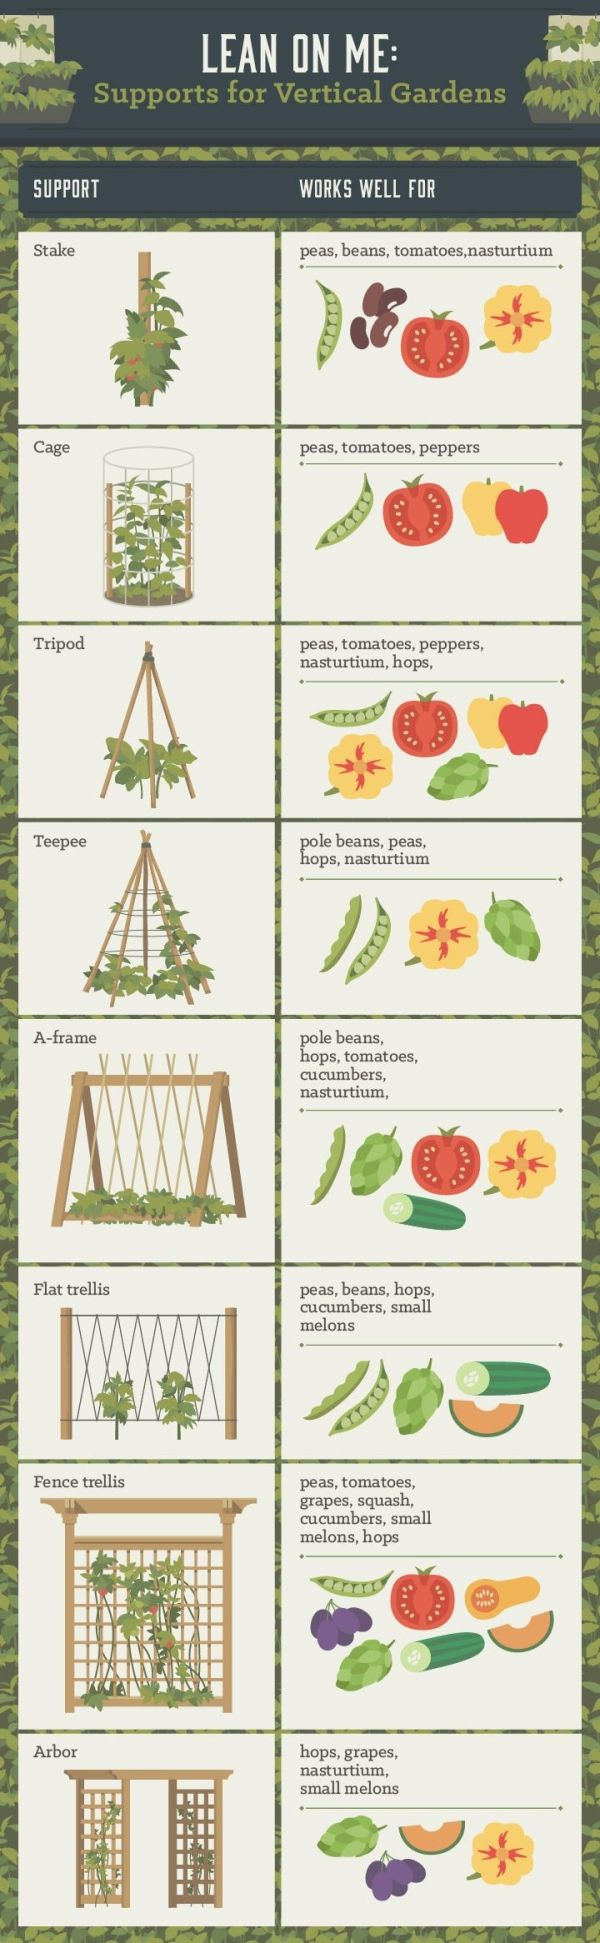 Republished with permission from thehomesteadsurvival.com These great tips of how to save gardening space by growing vertically up allows you use less ground space while growing vining plants or vegetables. For those who have plenty of room in the backyard to set aside part of it to plant a garden,...More by alana